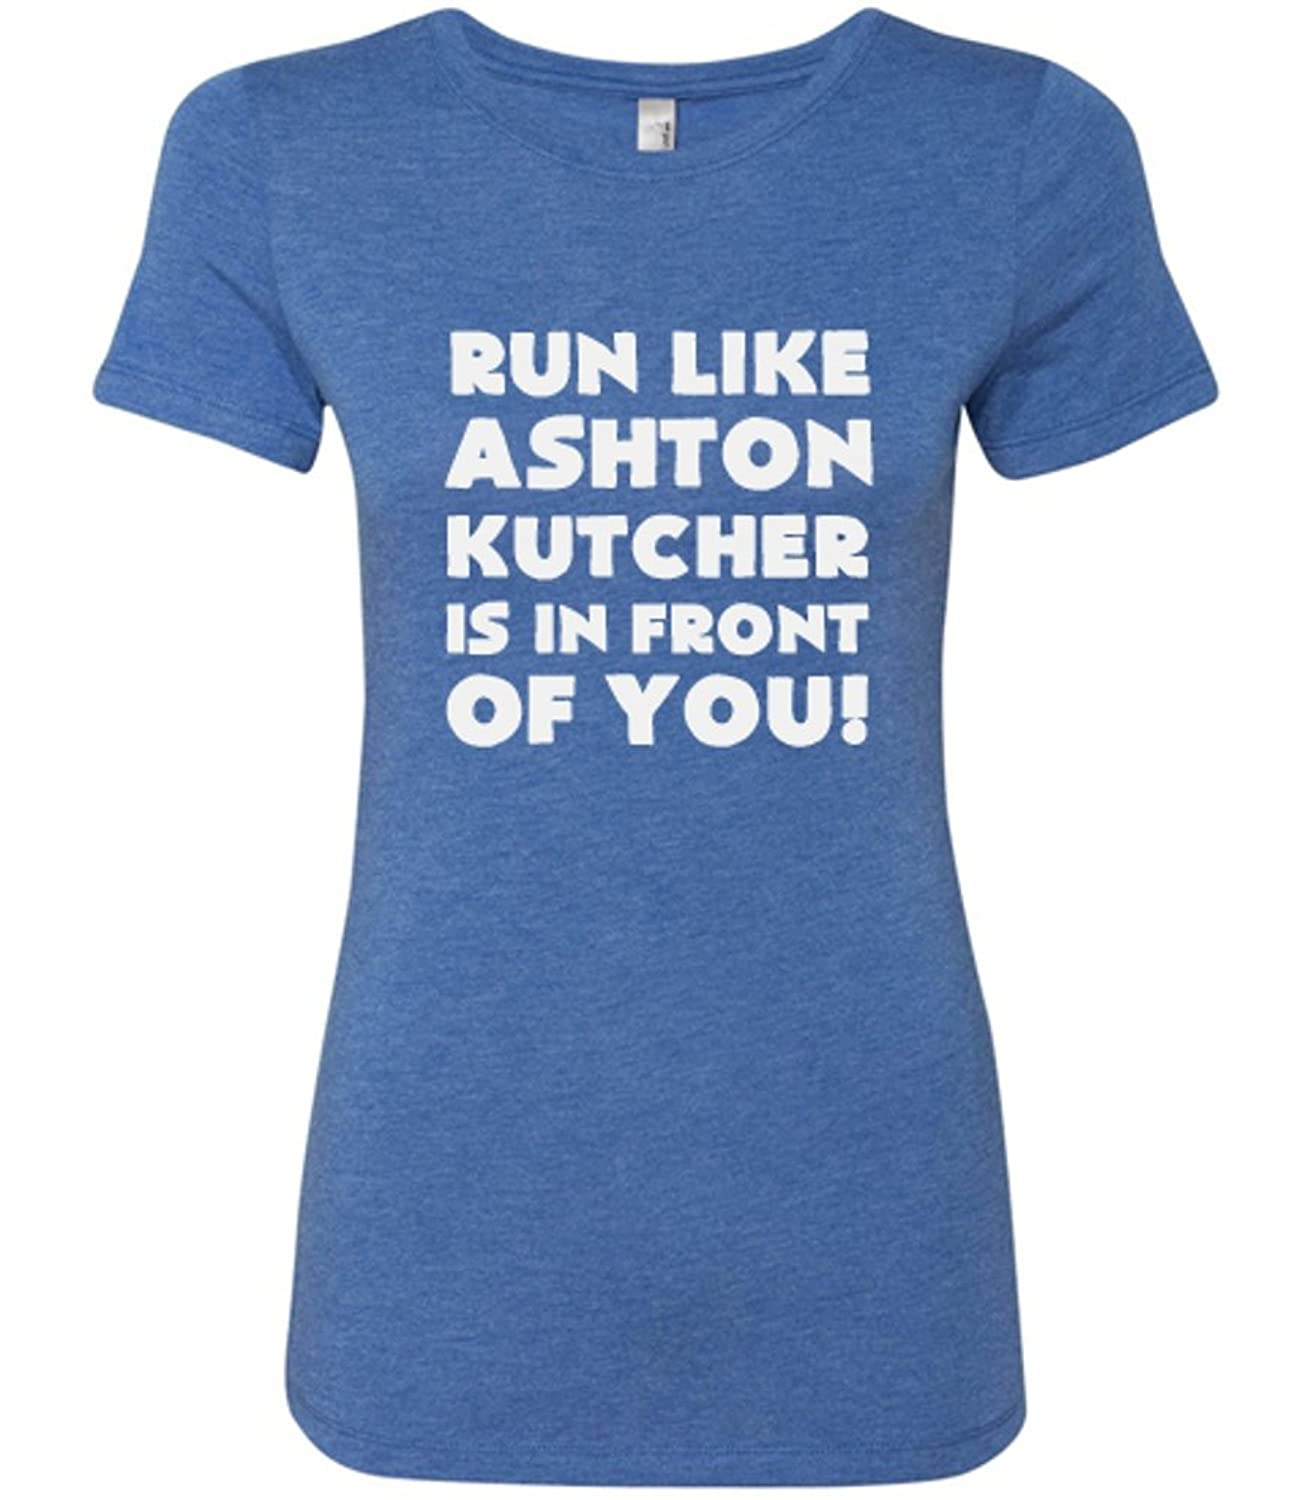 Constantly Varied Women's Run Like Ashton Kutcher Is In Front of You Shirt